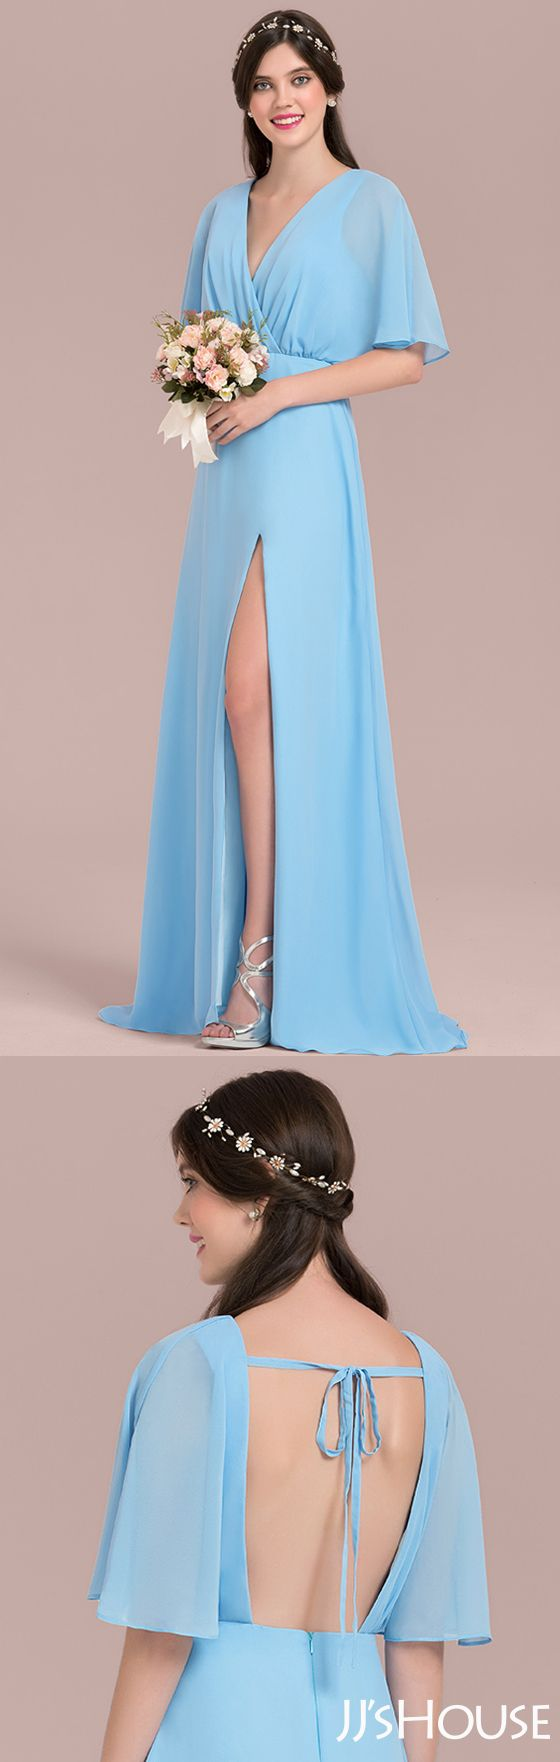 The gentle color and modern design of this bridesmaid dress is marvelous! #JJsHouse # Bridesmaid